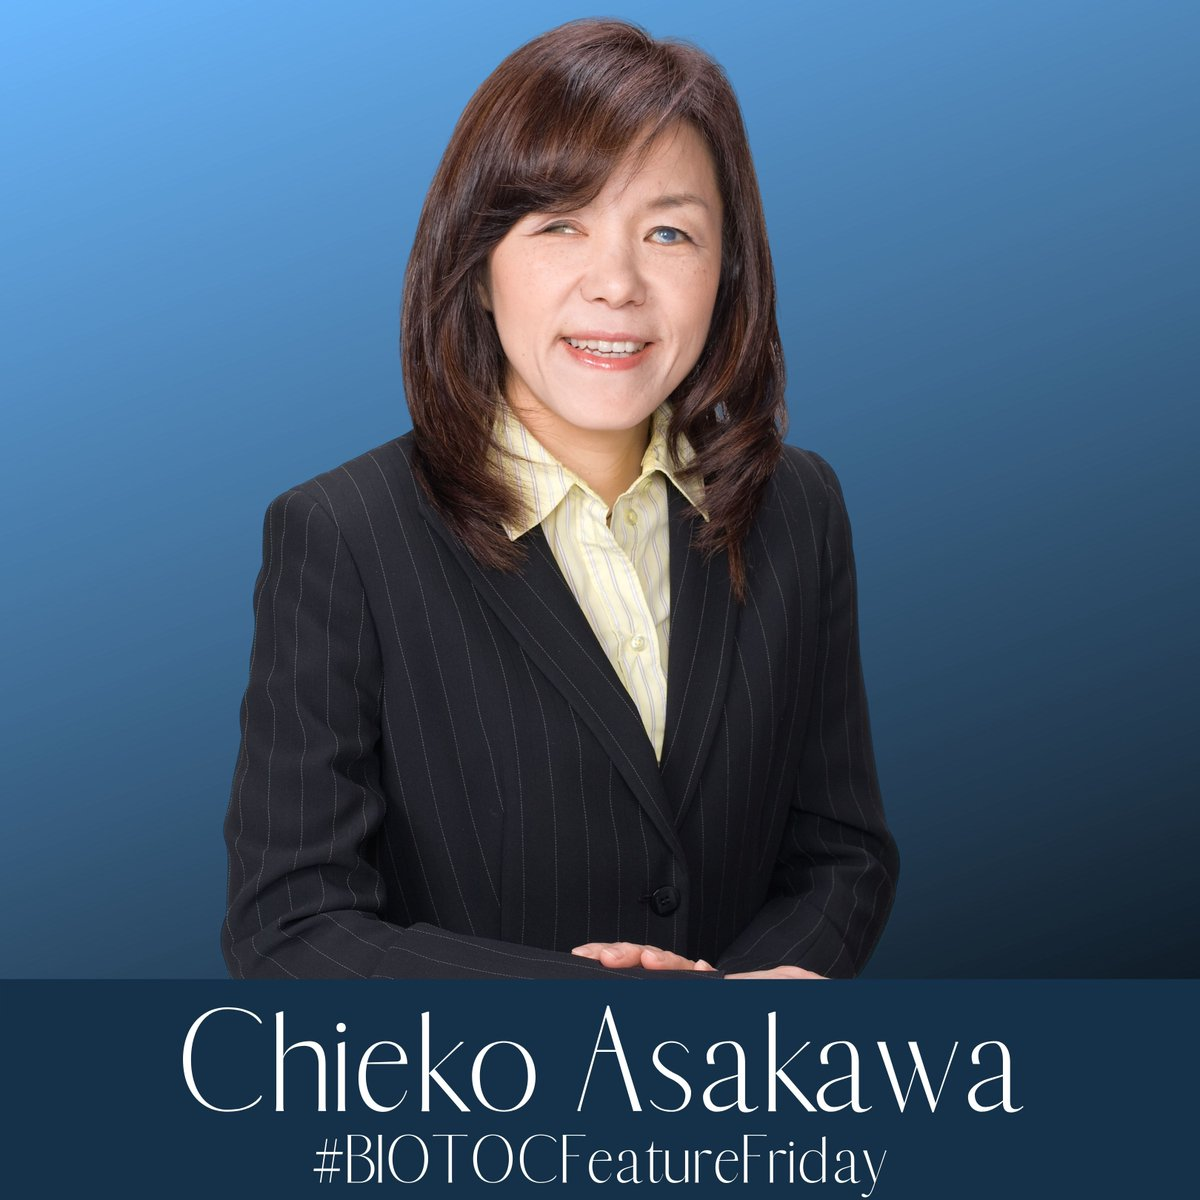 Check out our Instagram page to see our #BIOTOCFeatureFriday of one special #WomaninSTEM in honor of Blindness Awareness Month: Chieko Asakawa.   #FemaleRodeModels #FemaleLeaders #STEM #WomeninTech https://t.co/bkjatLbImD